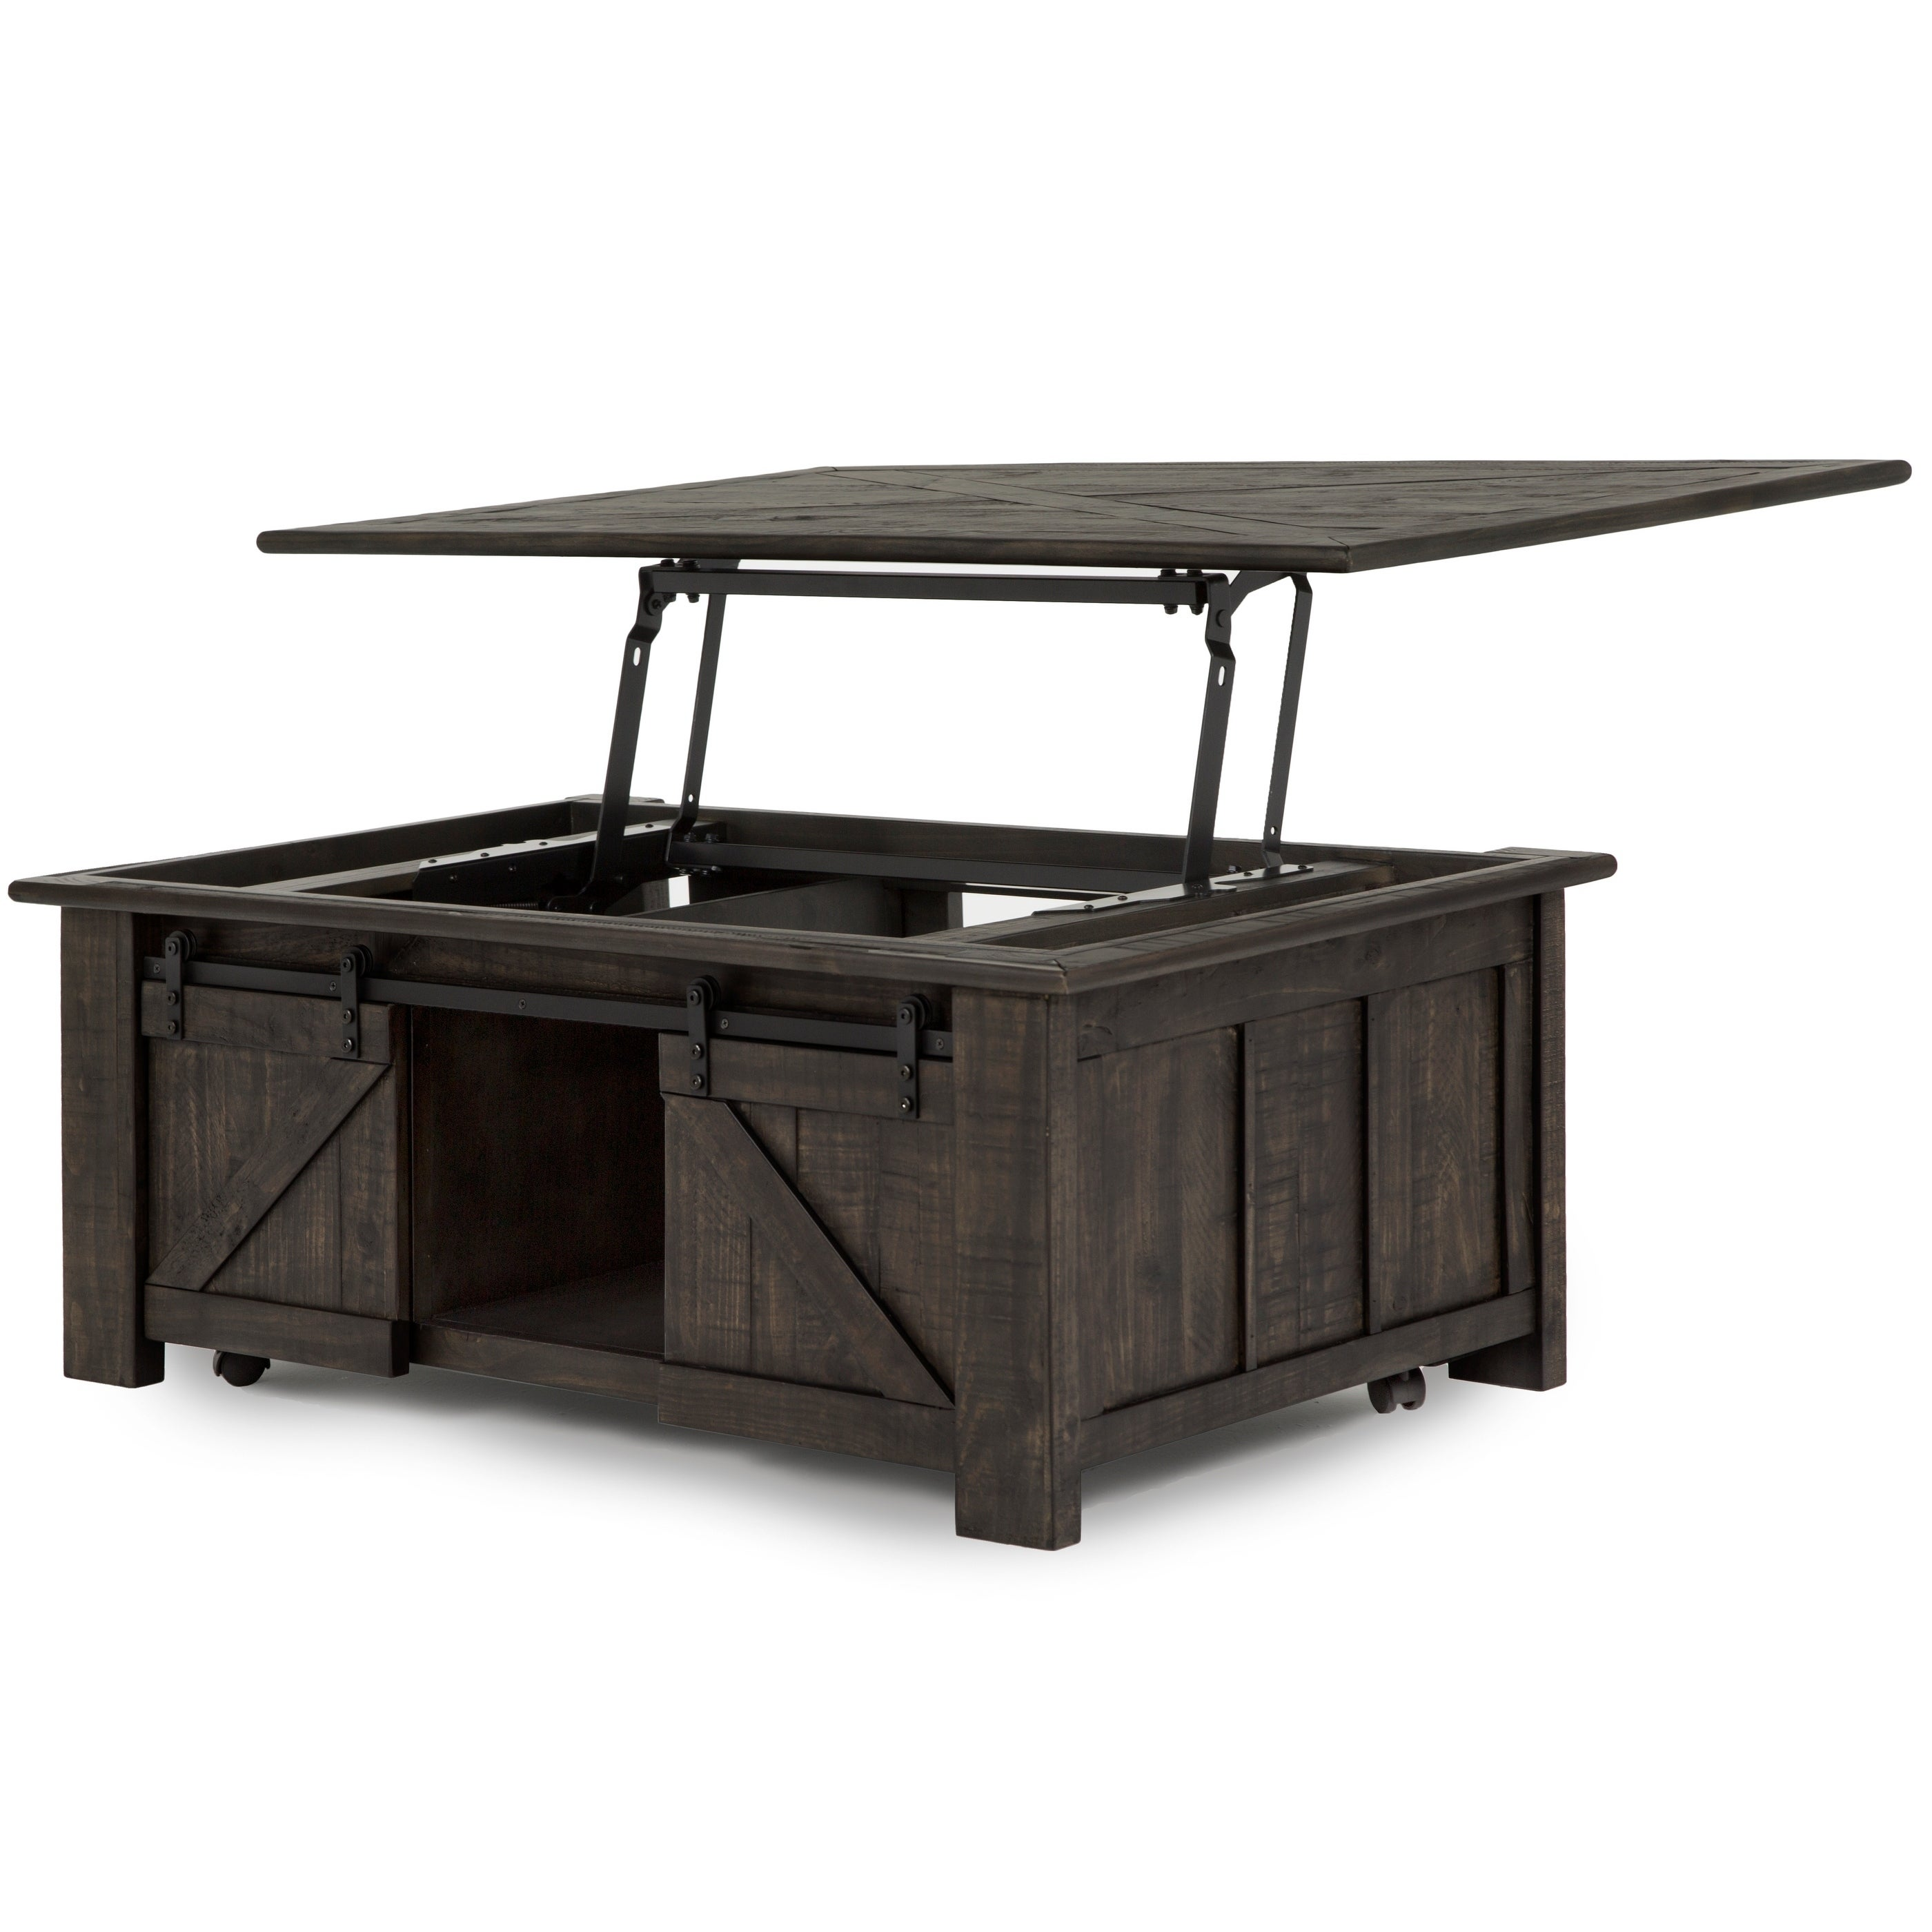 Superbe Garrett Rustic Weathered Charcoal Lift Top Sliding Door Coffee Table With  Casters